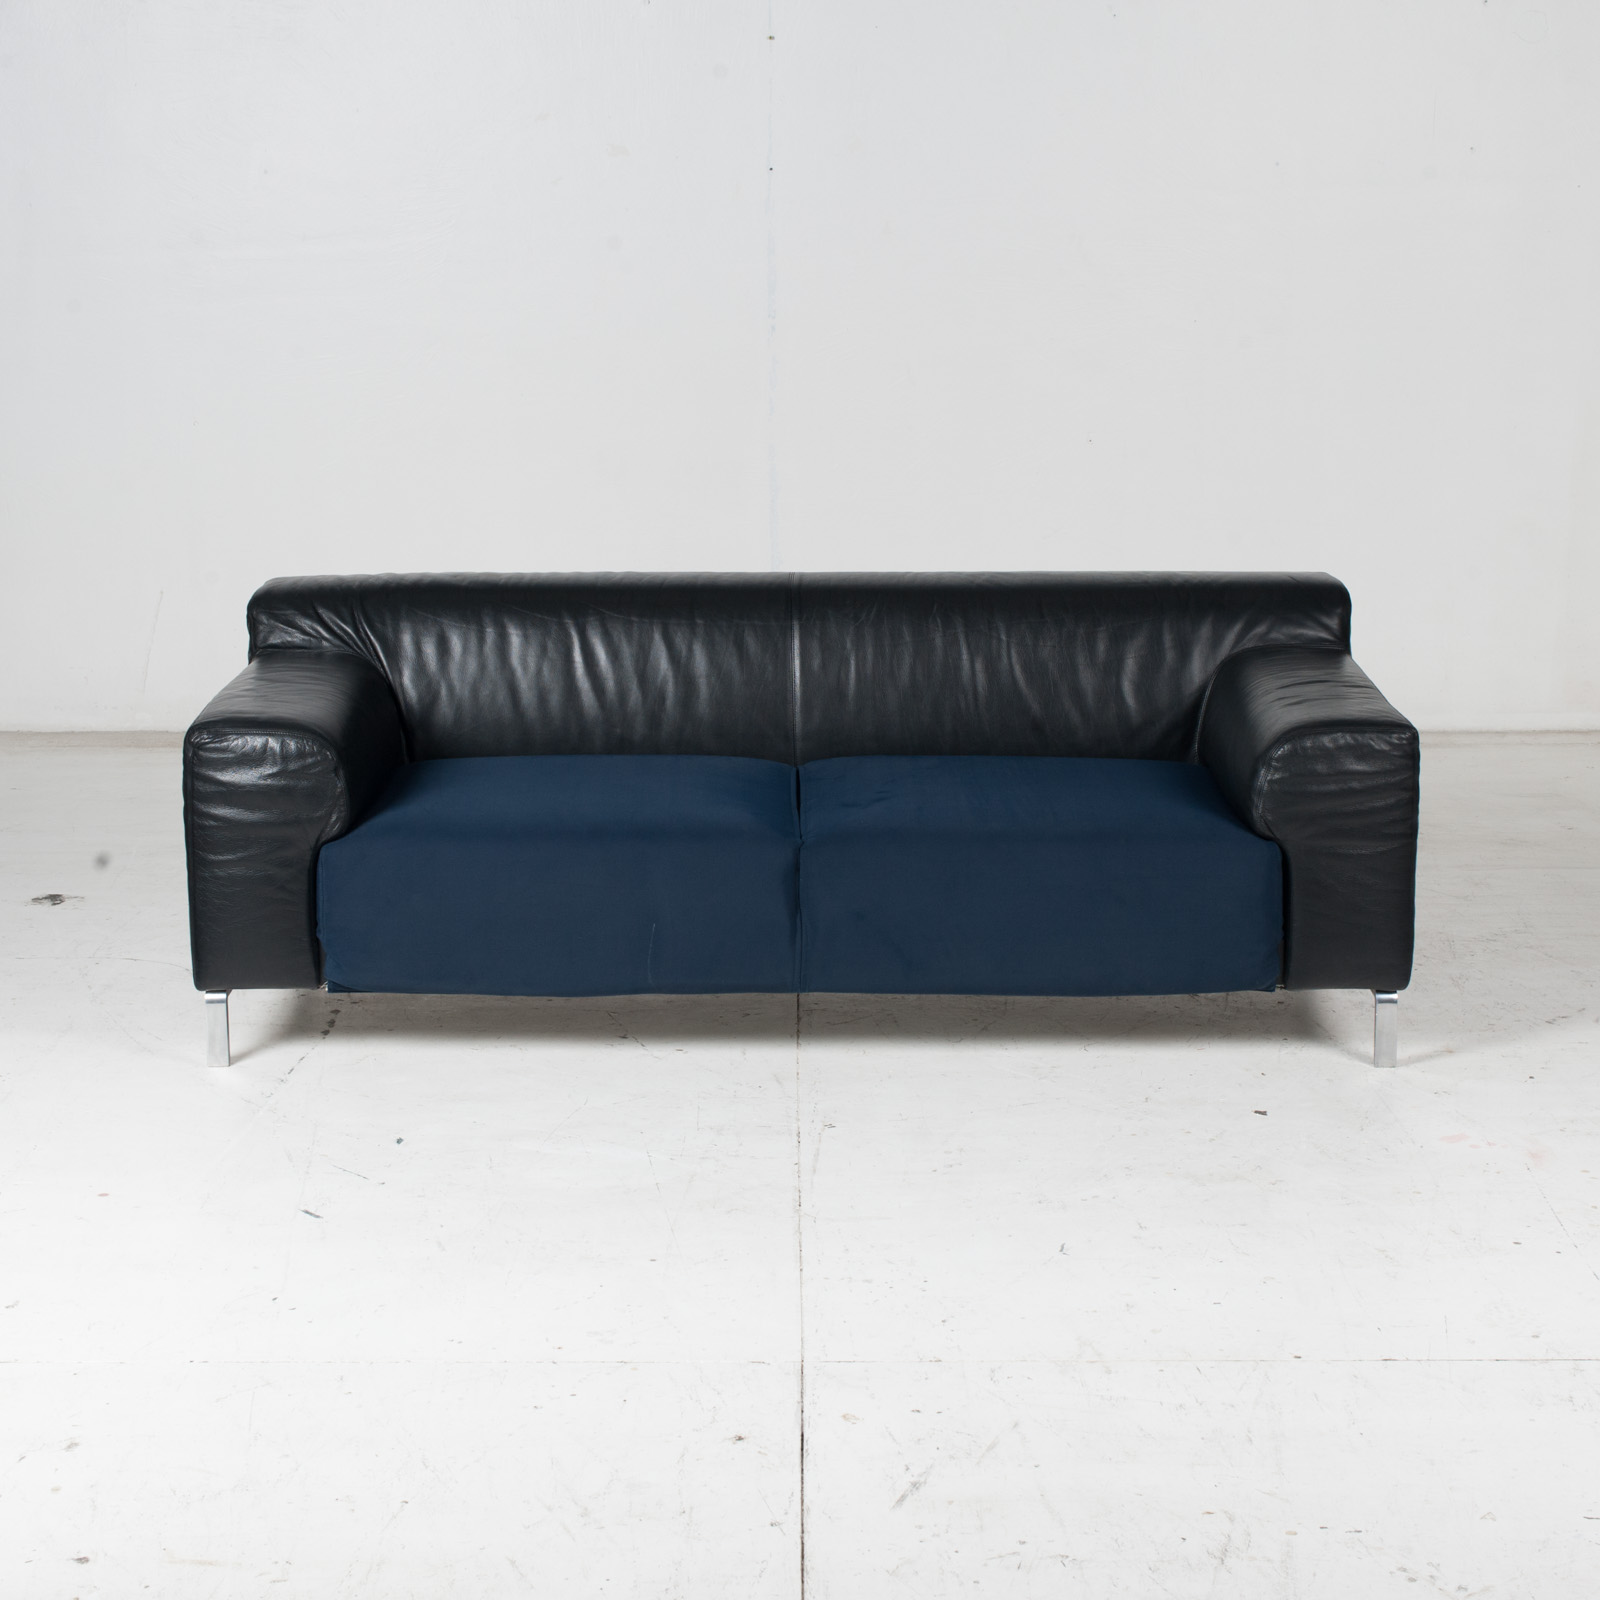 Model Greg 2 Seat Sofa By E. Progetti With Back Upholstered In Black Leather And Seat In Blue Fabric With Chrome Legs, 1960s, Italy 2